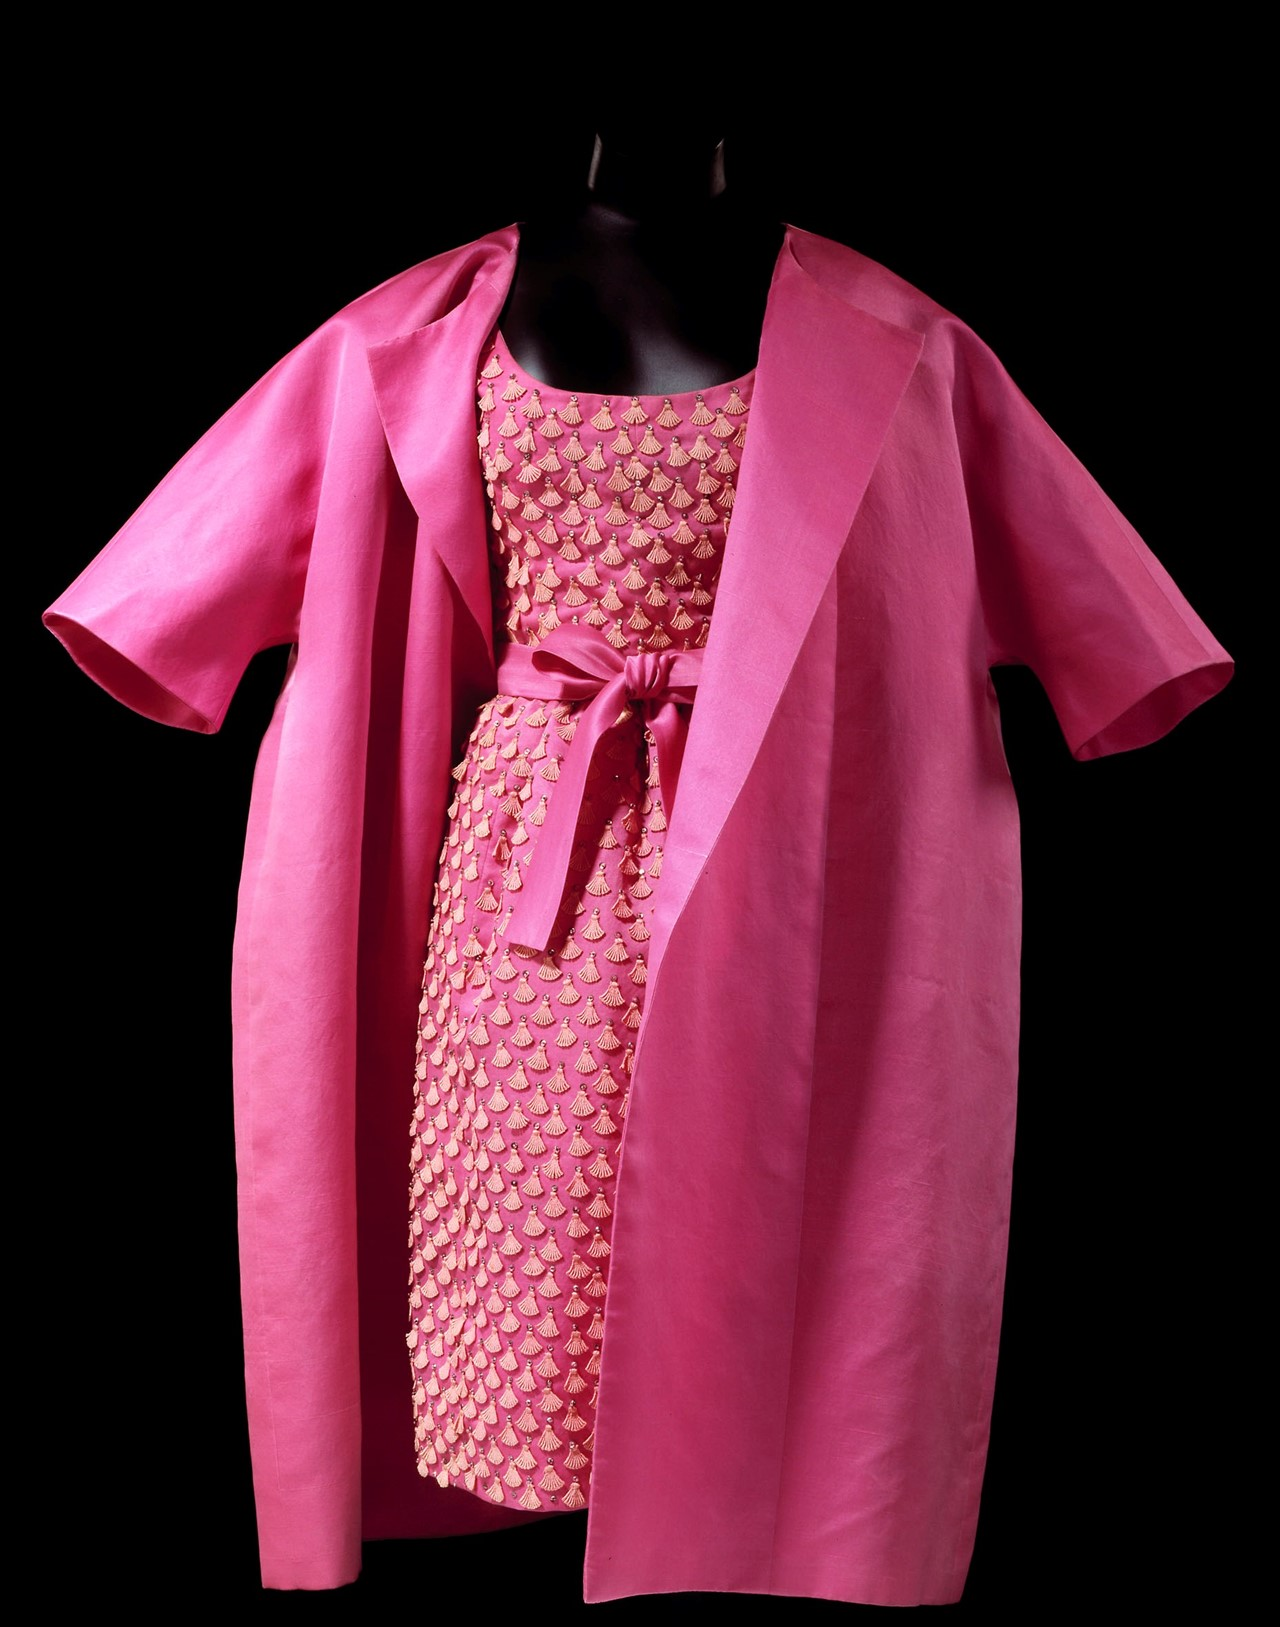 Hubert de Givenchy and Audrey Hepburn\'s Fashion Romance | AnOther